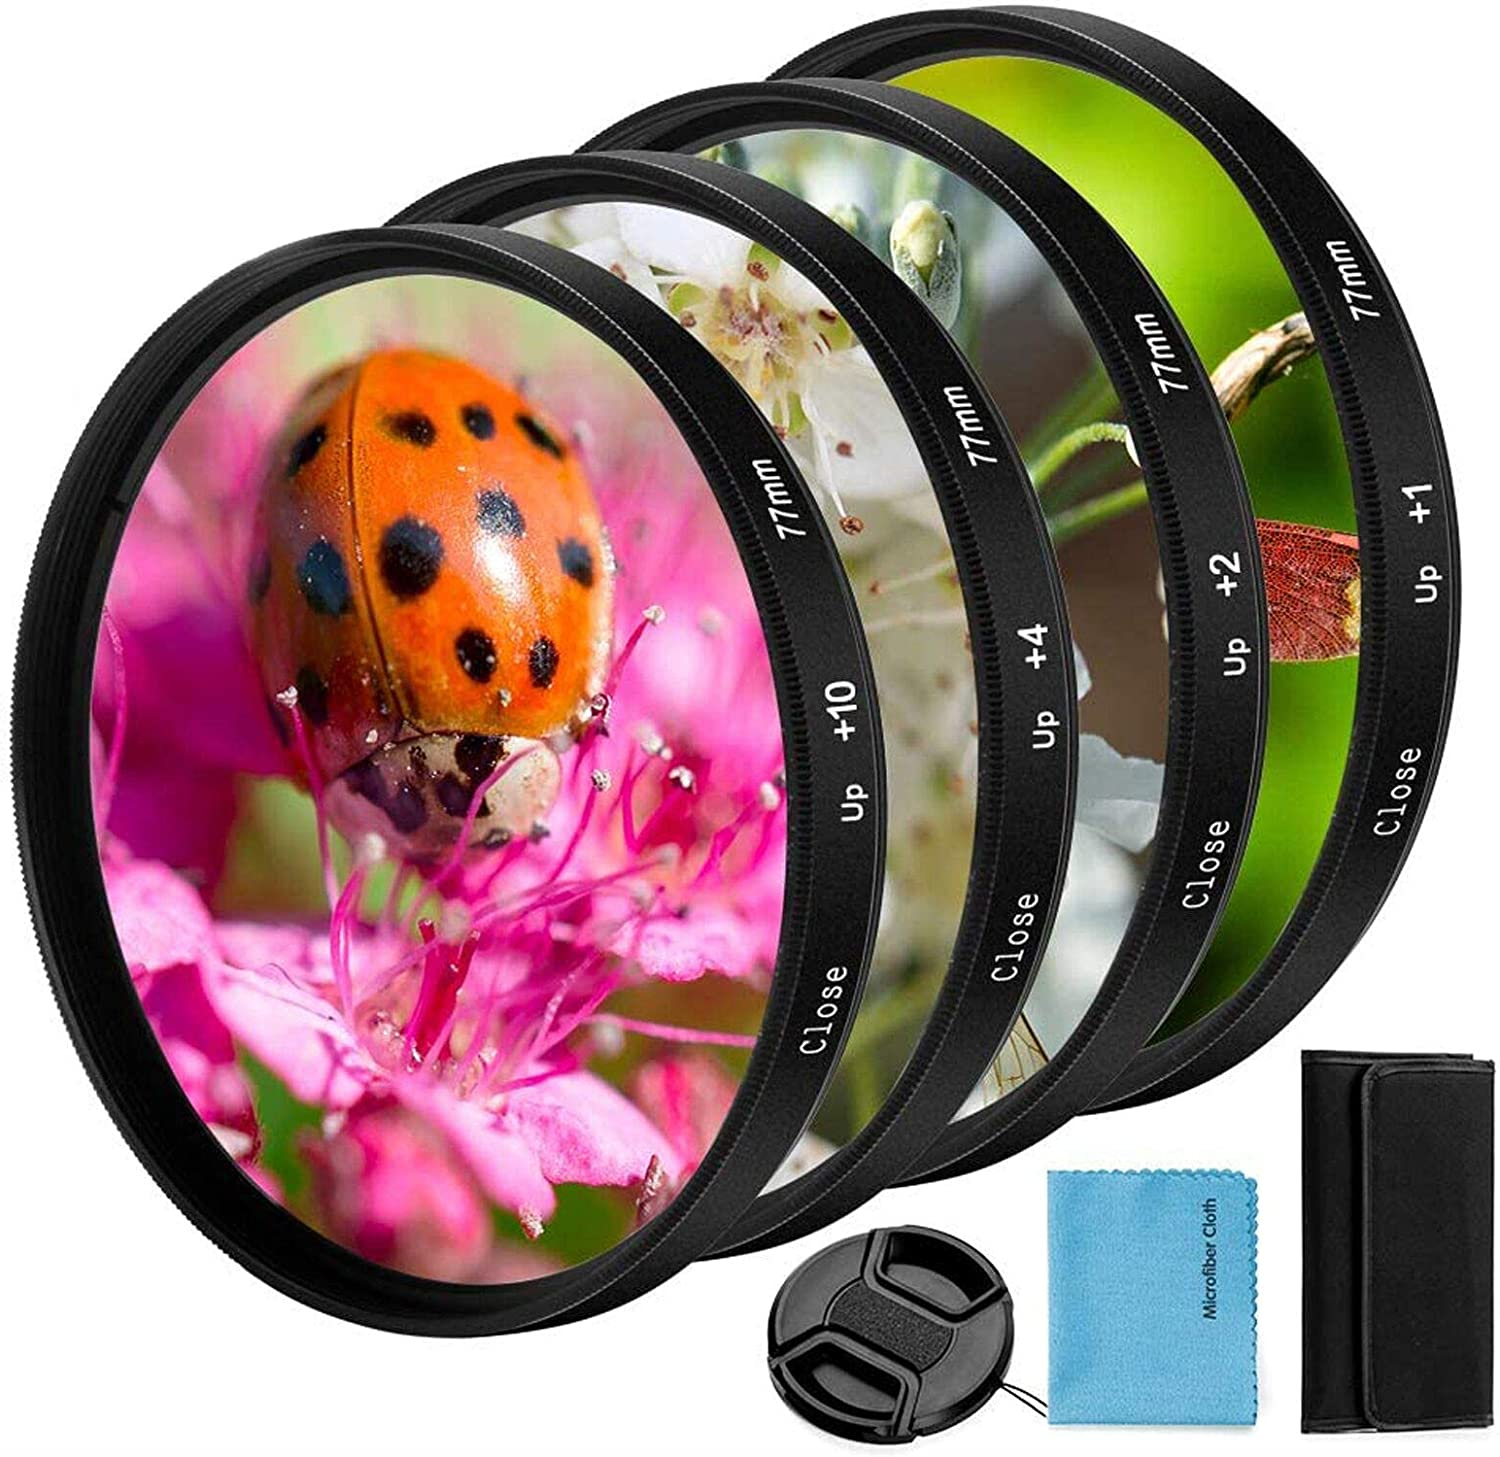 67mm Close-up Filter Kit 4 Pieces Macro Easy-to-use +2 +1 Sales for sale Acc +10